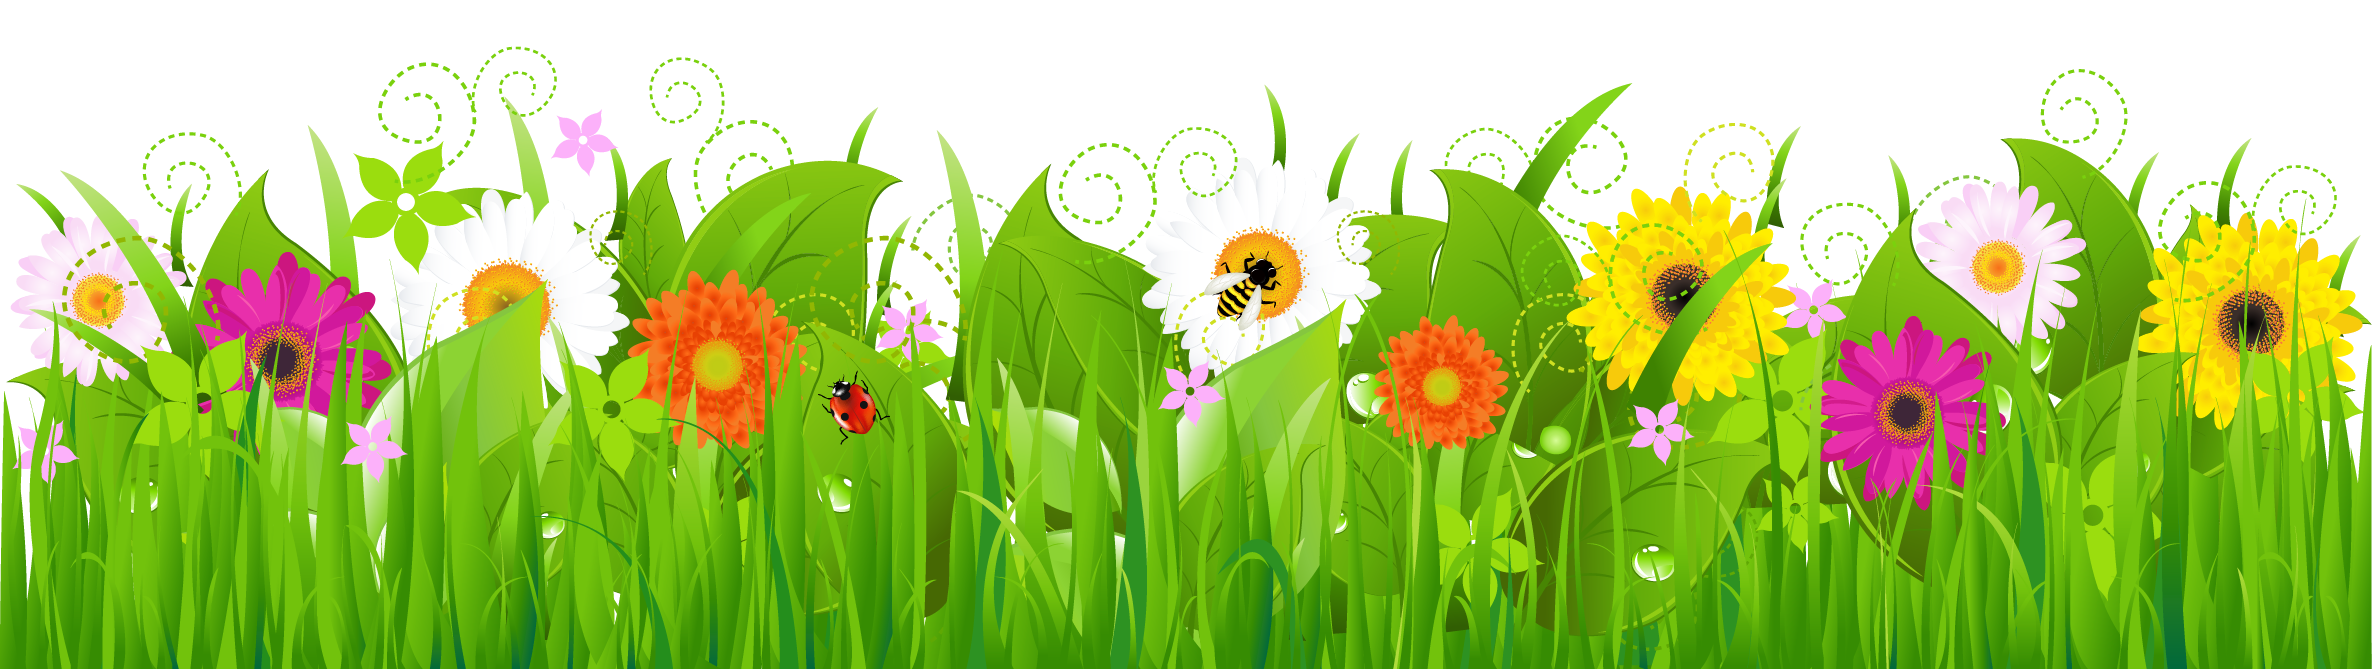 Poppy clipart fence border. Clip art grass cliparts